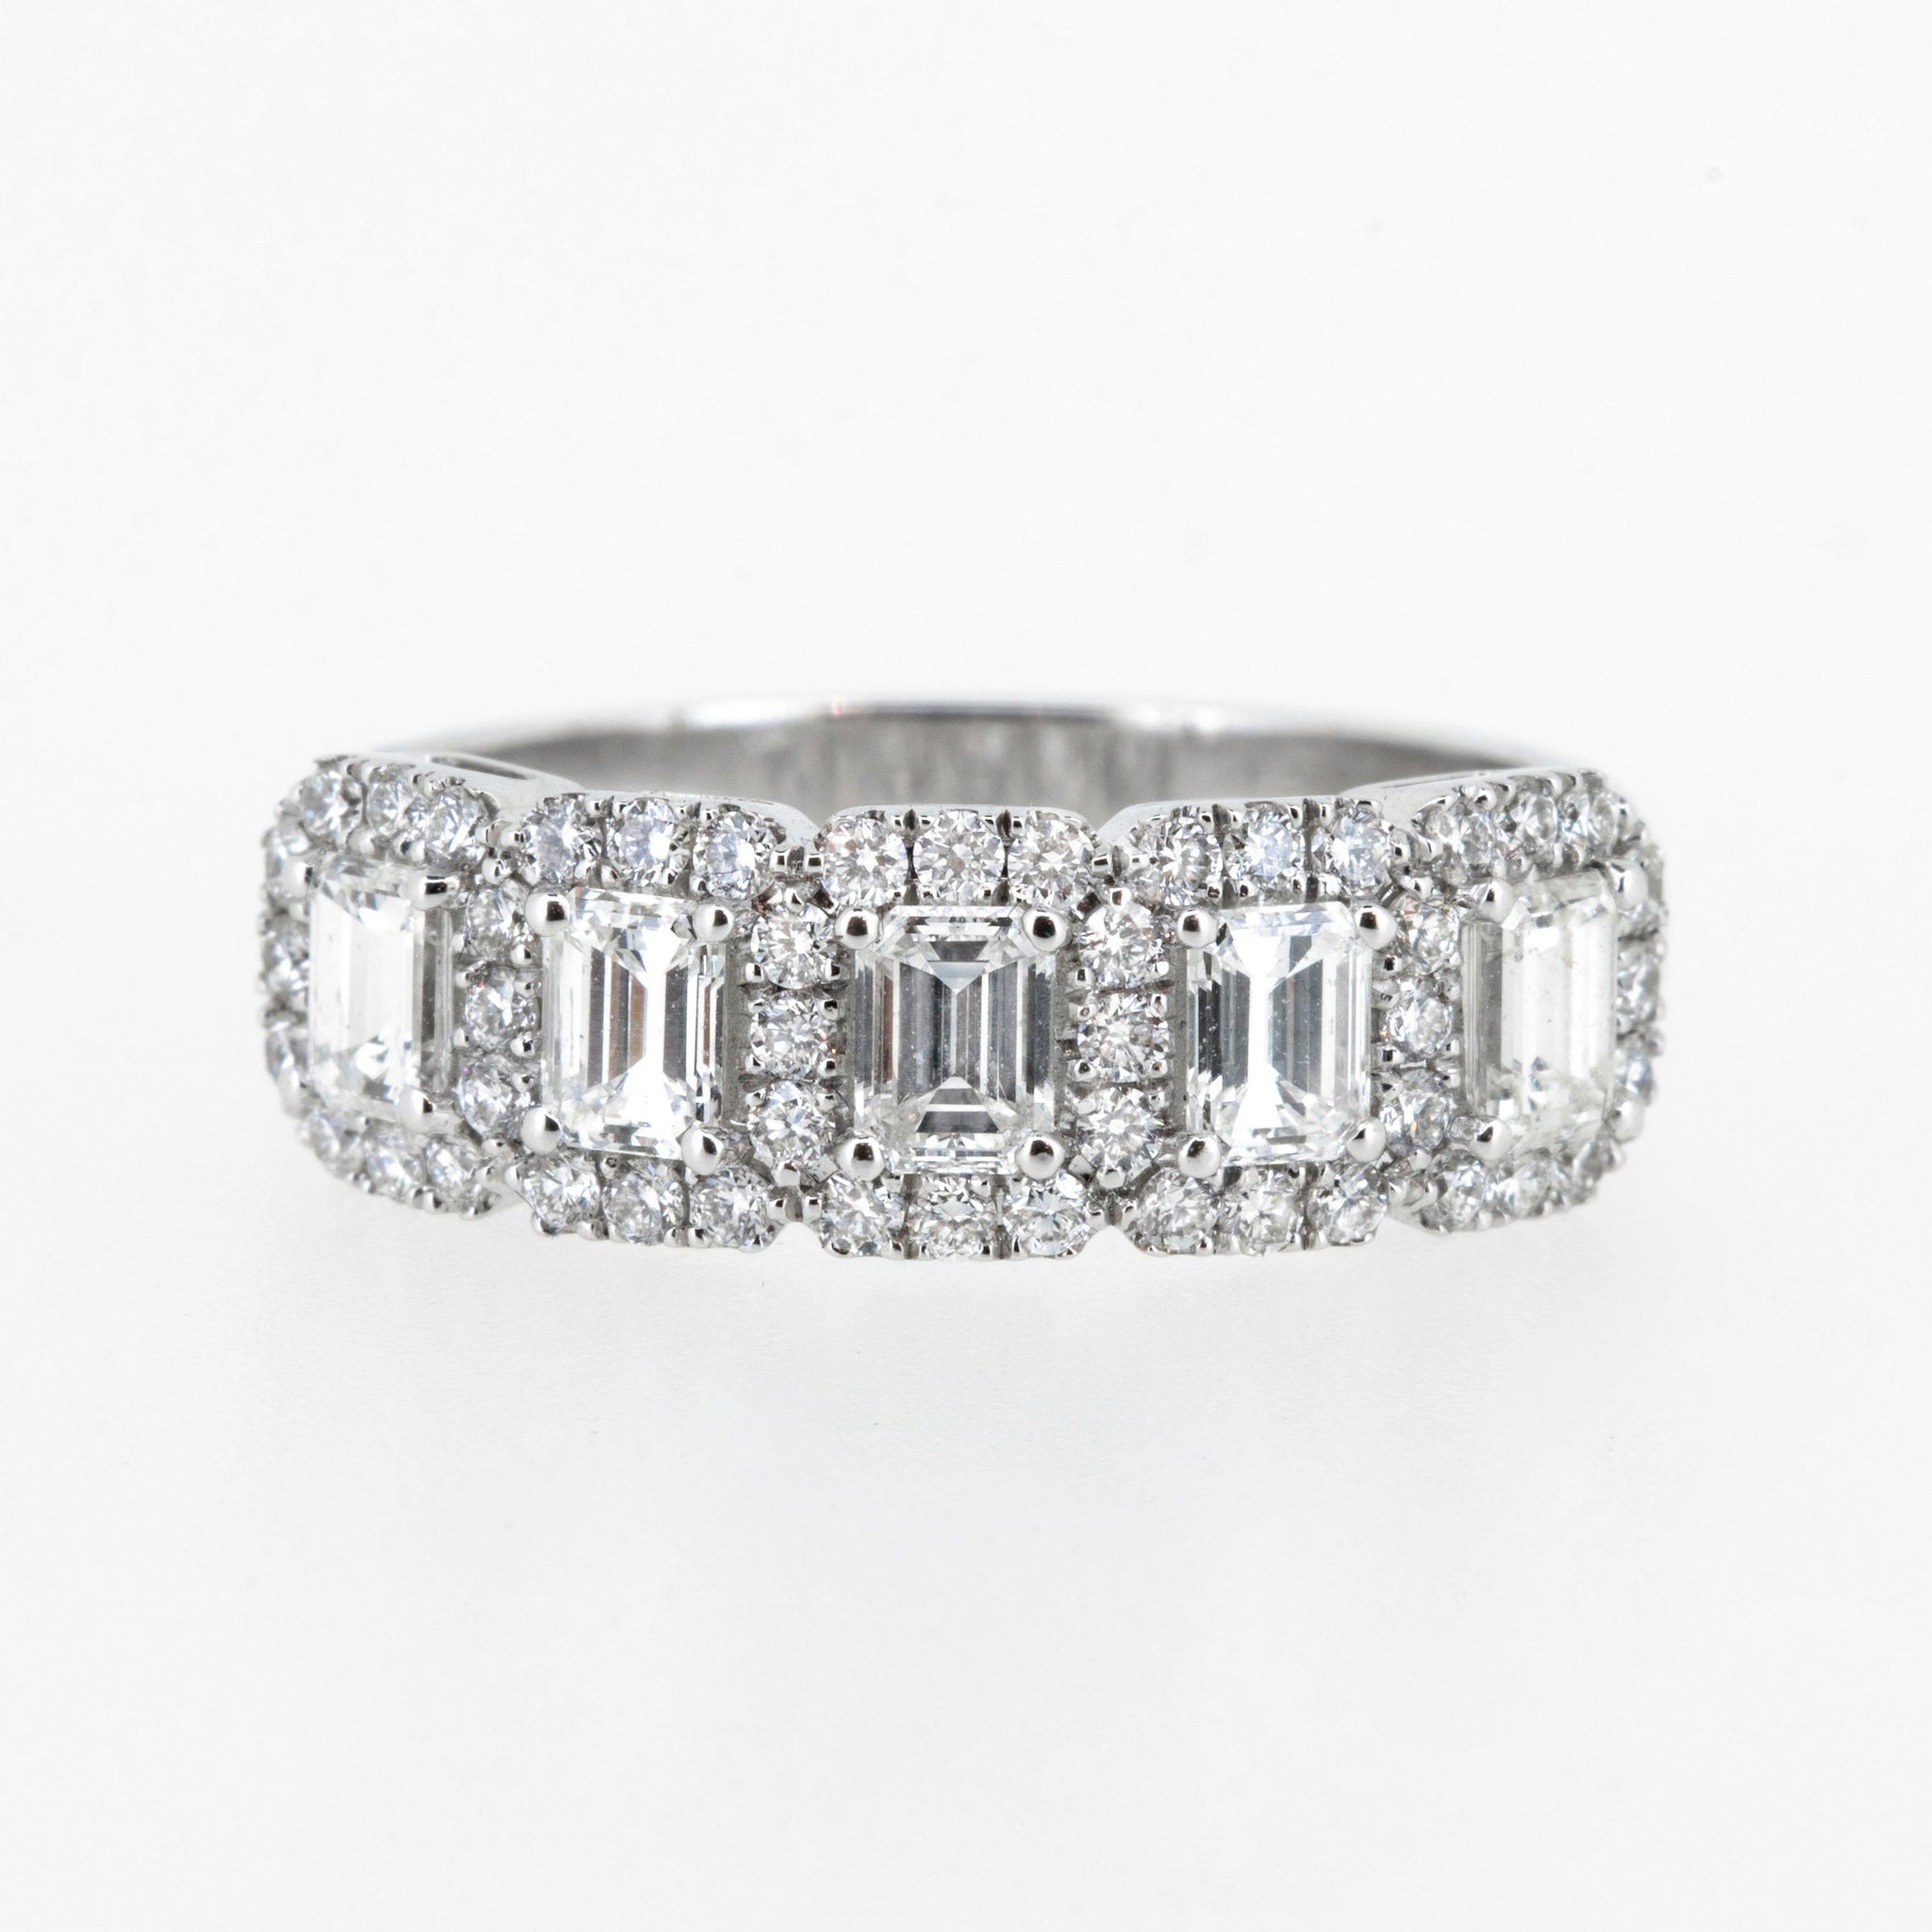 Eternity and wedding rings for the discerning